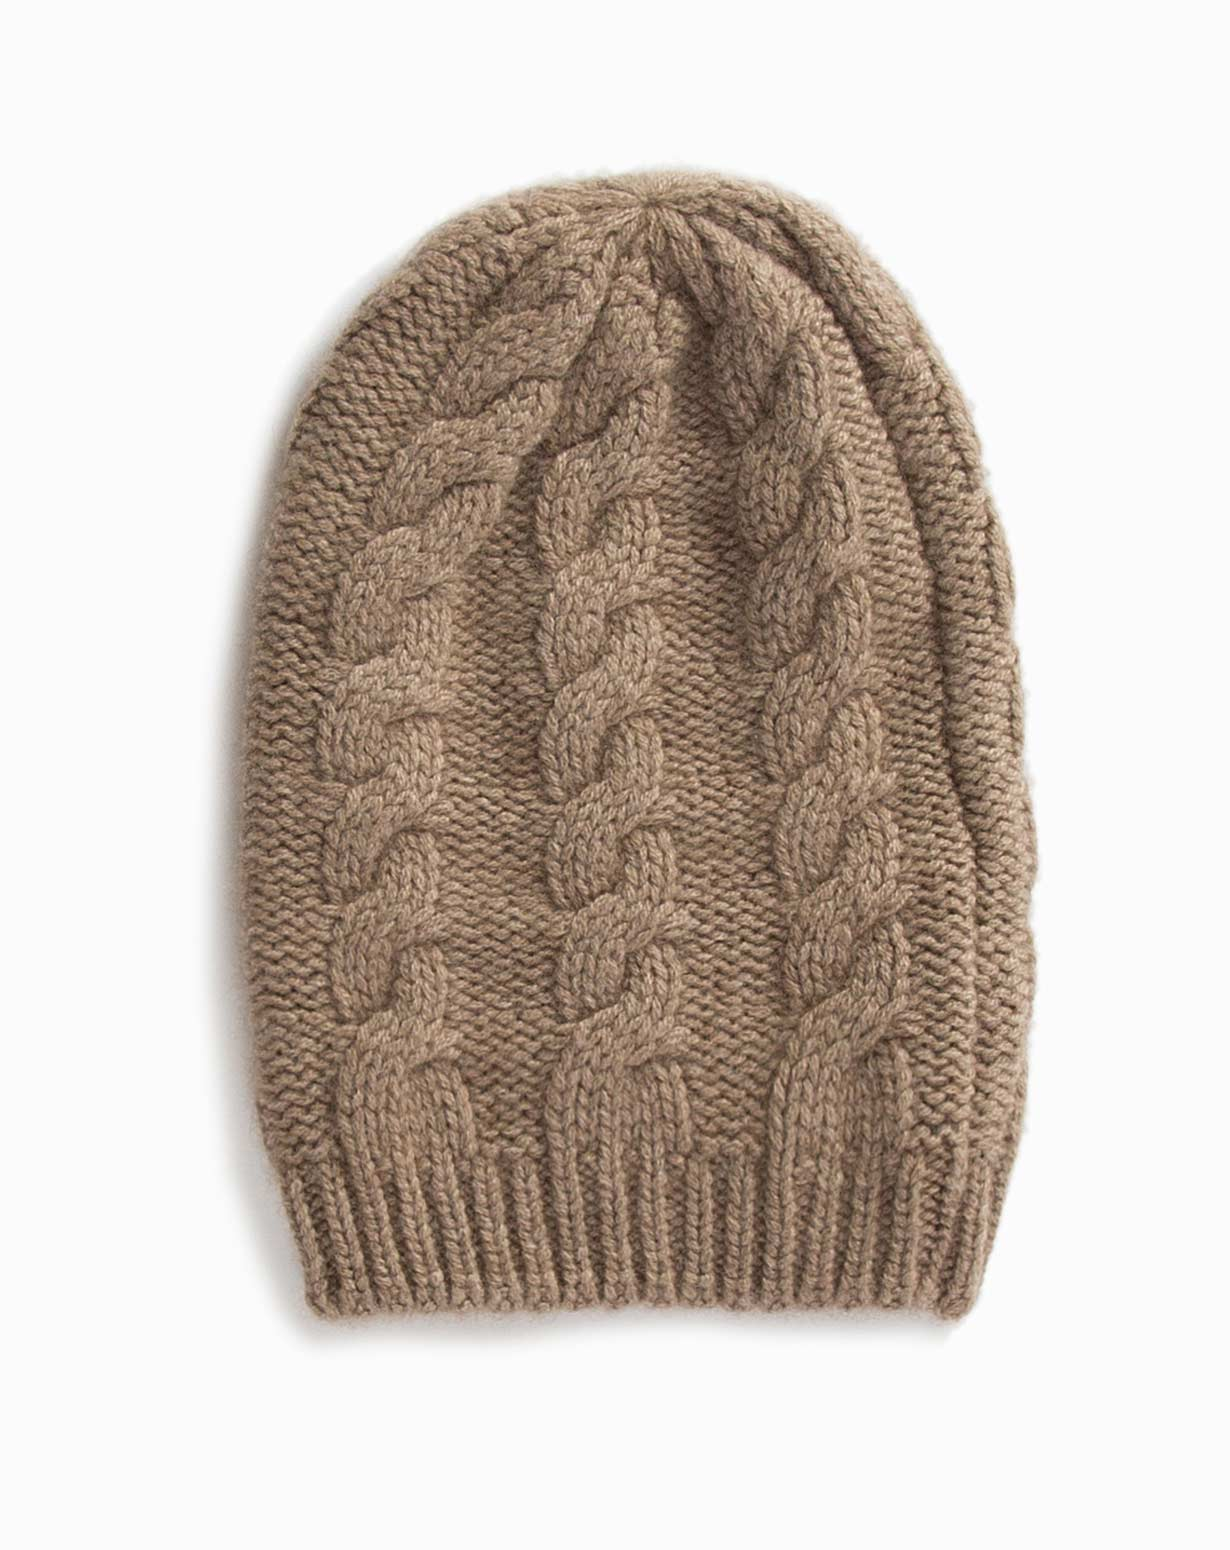 Knitting Pattern For Cashmere Beanie : Ladies Cashmere Cable Knit Beanie